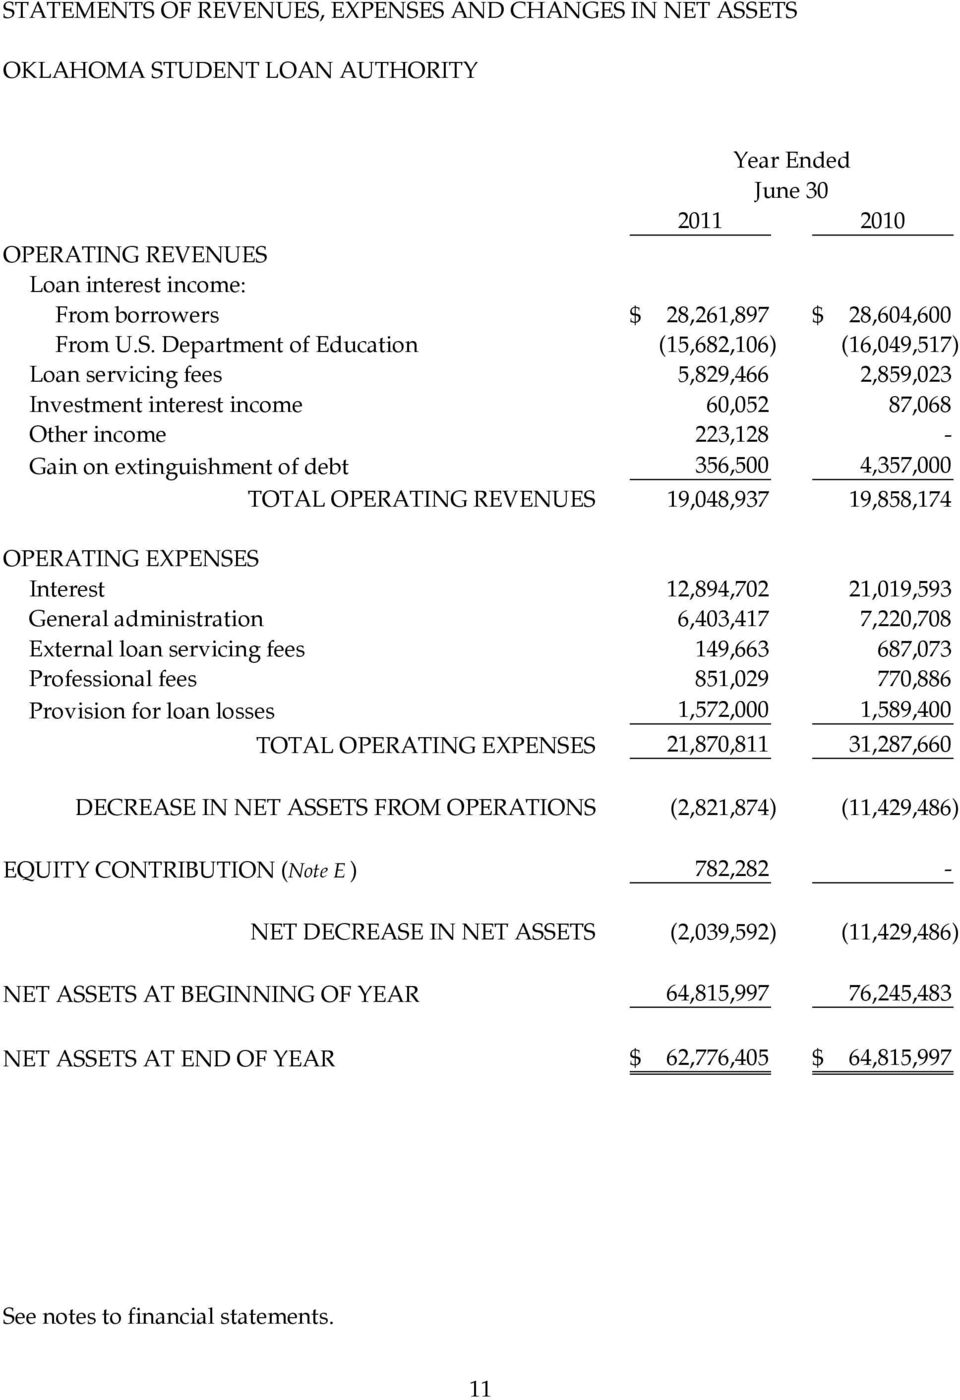 OPERATING REVENUES 19,048,937 19,858,174 OPERATING EXPENSES Interest 12,894,702 21,019,593 General administration 6,403,417 7,220,708 External loan servicing fees 149,663 687,073 Professional fees